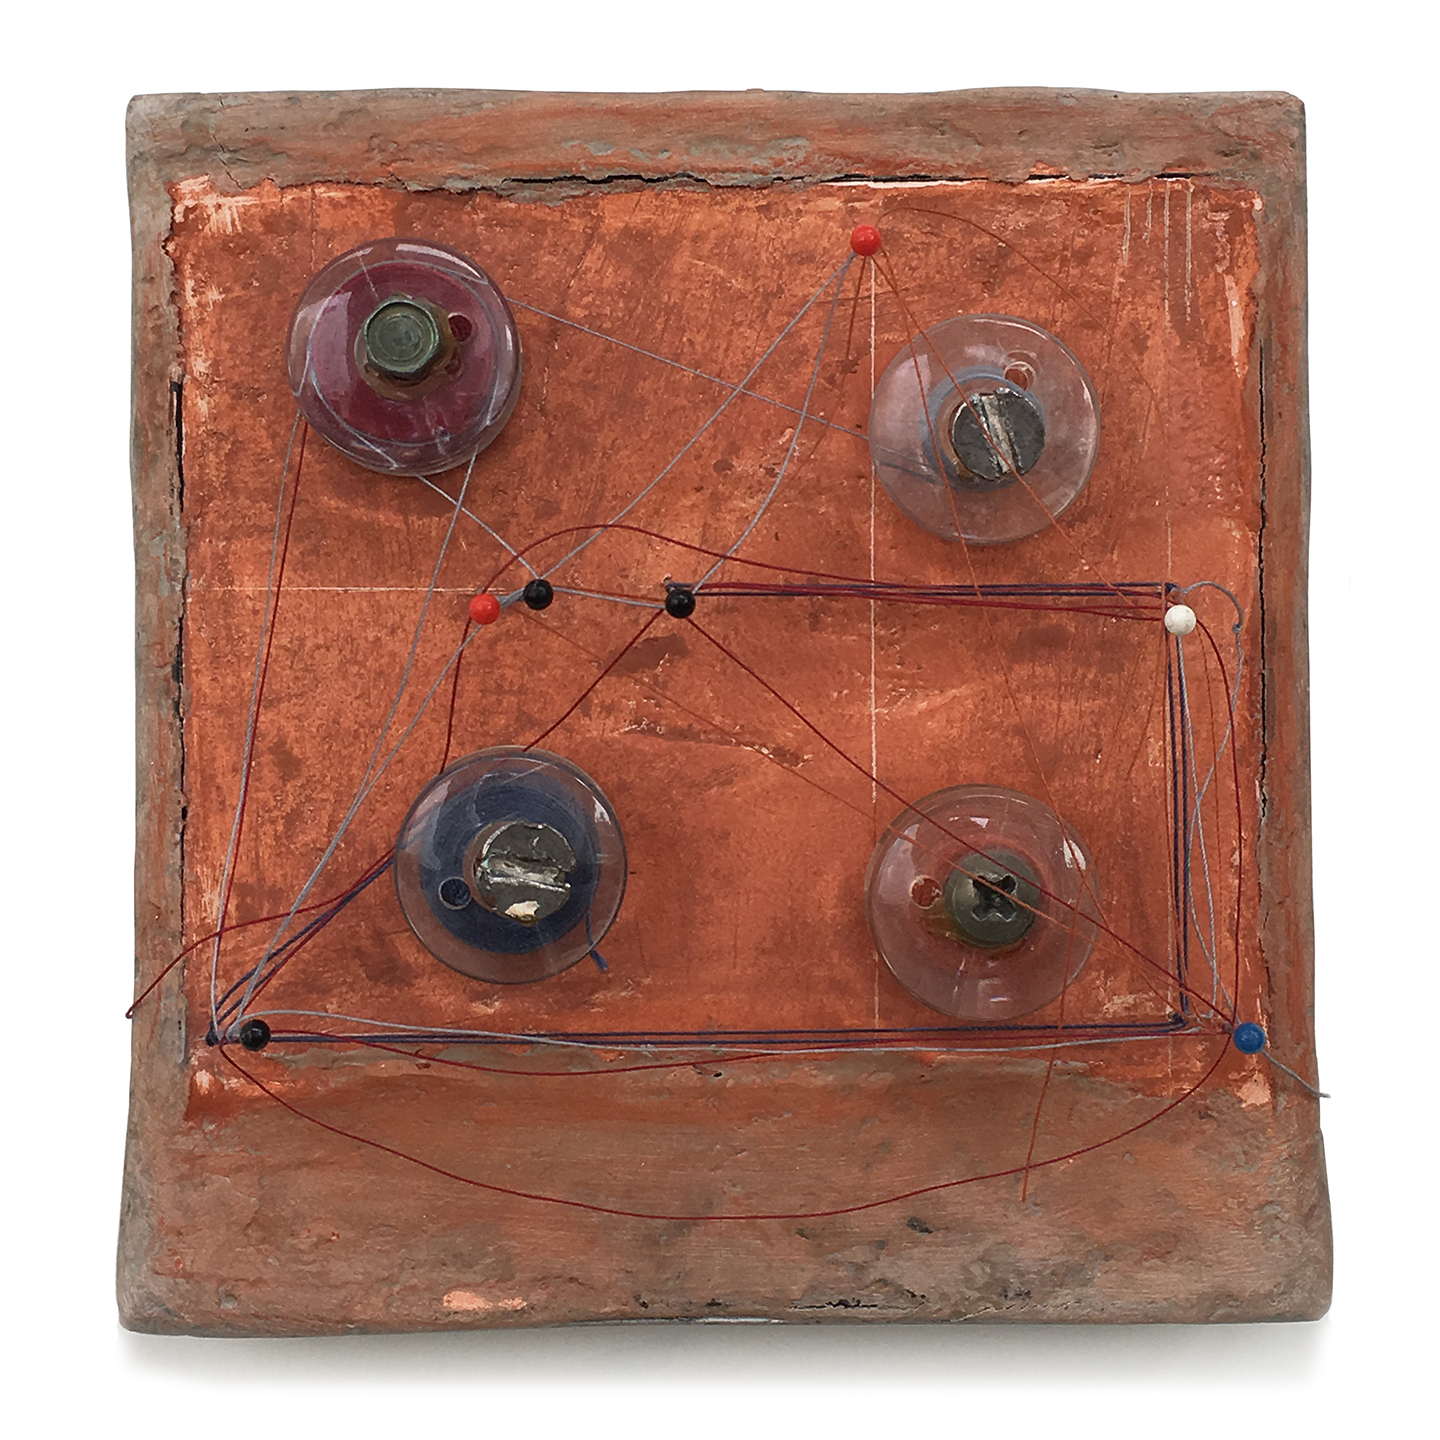 "Box 11, 1998, W4.25"" x H4.25"", Polaroid box, Sculptmetal, Paris plaster, thread and screws."